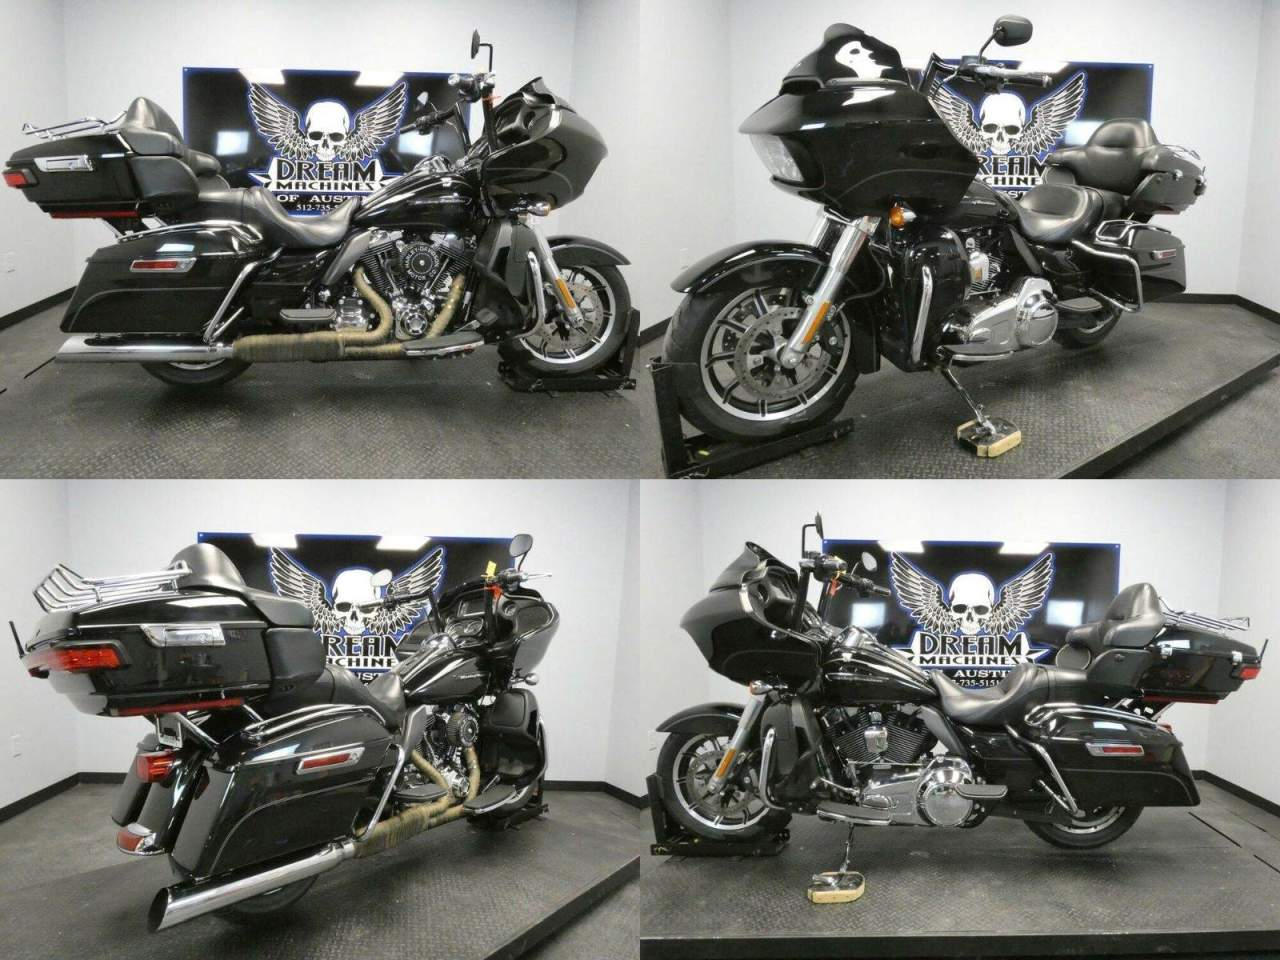 2016 Harley-Davidson FLTRU - Road Glide Ultra Black used for sale near me